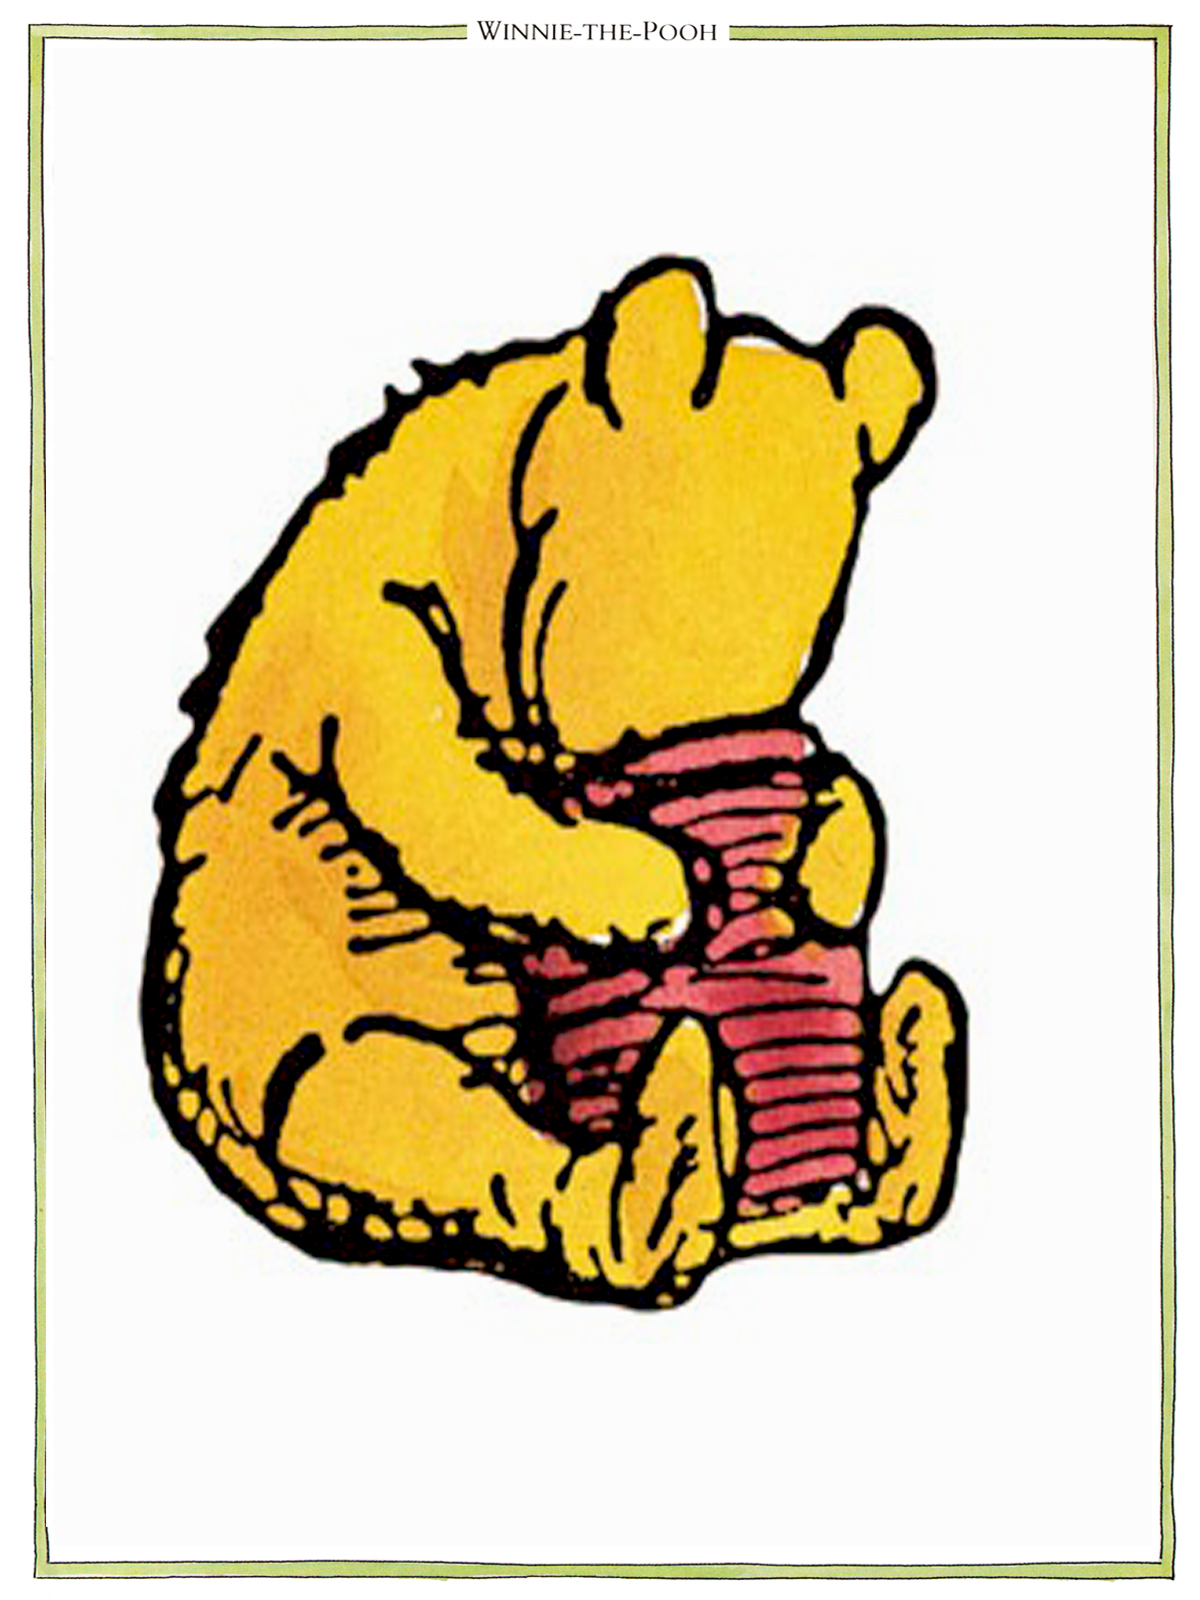 1200x1600 Pooh And The Honey Pot